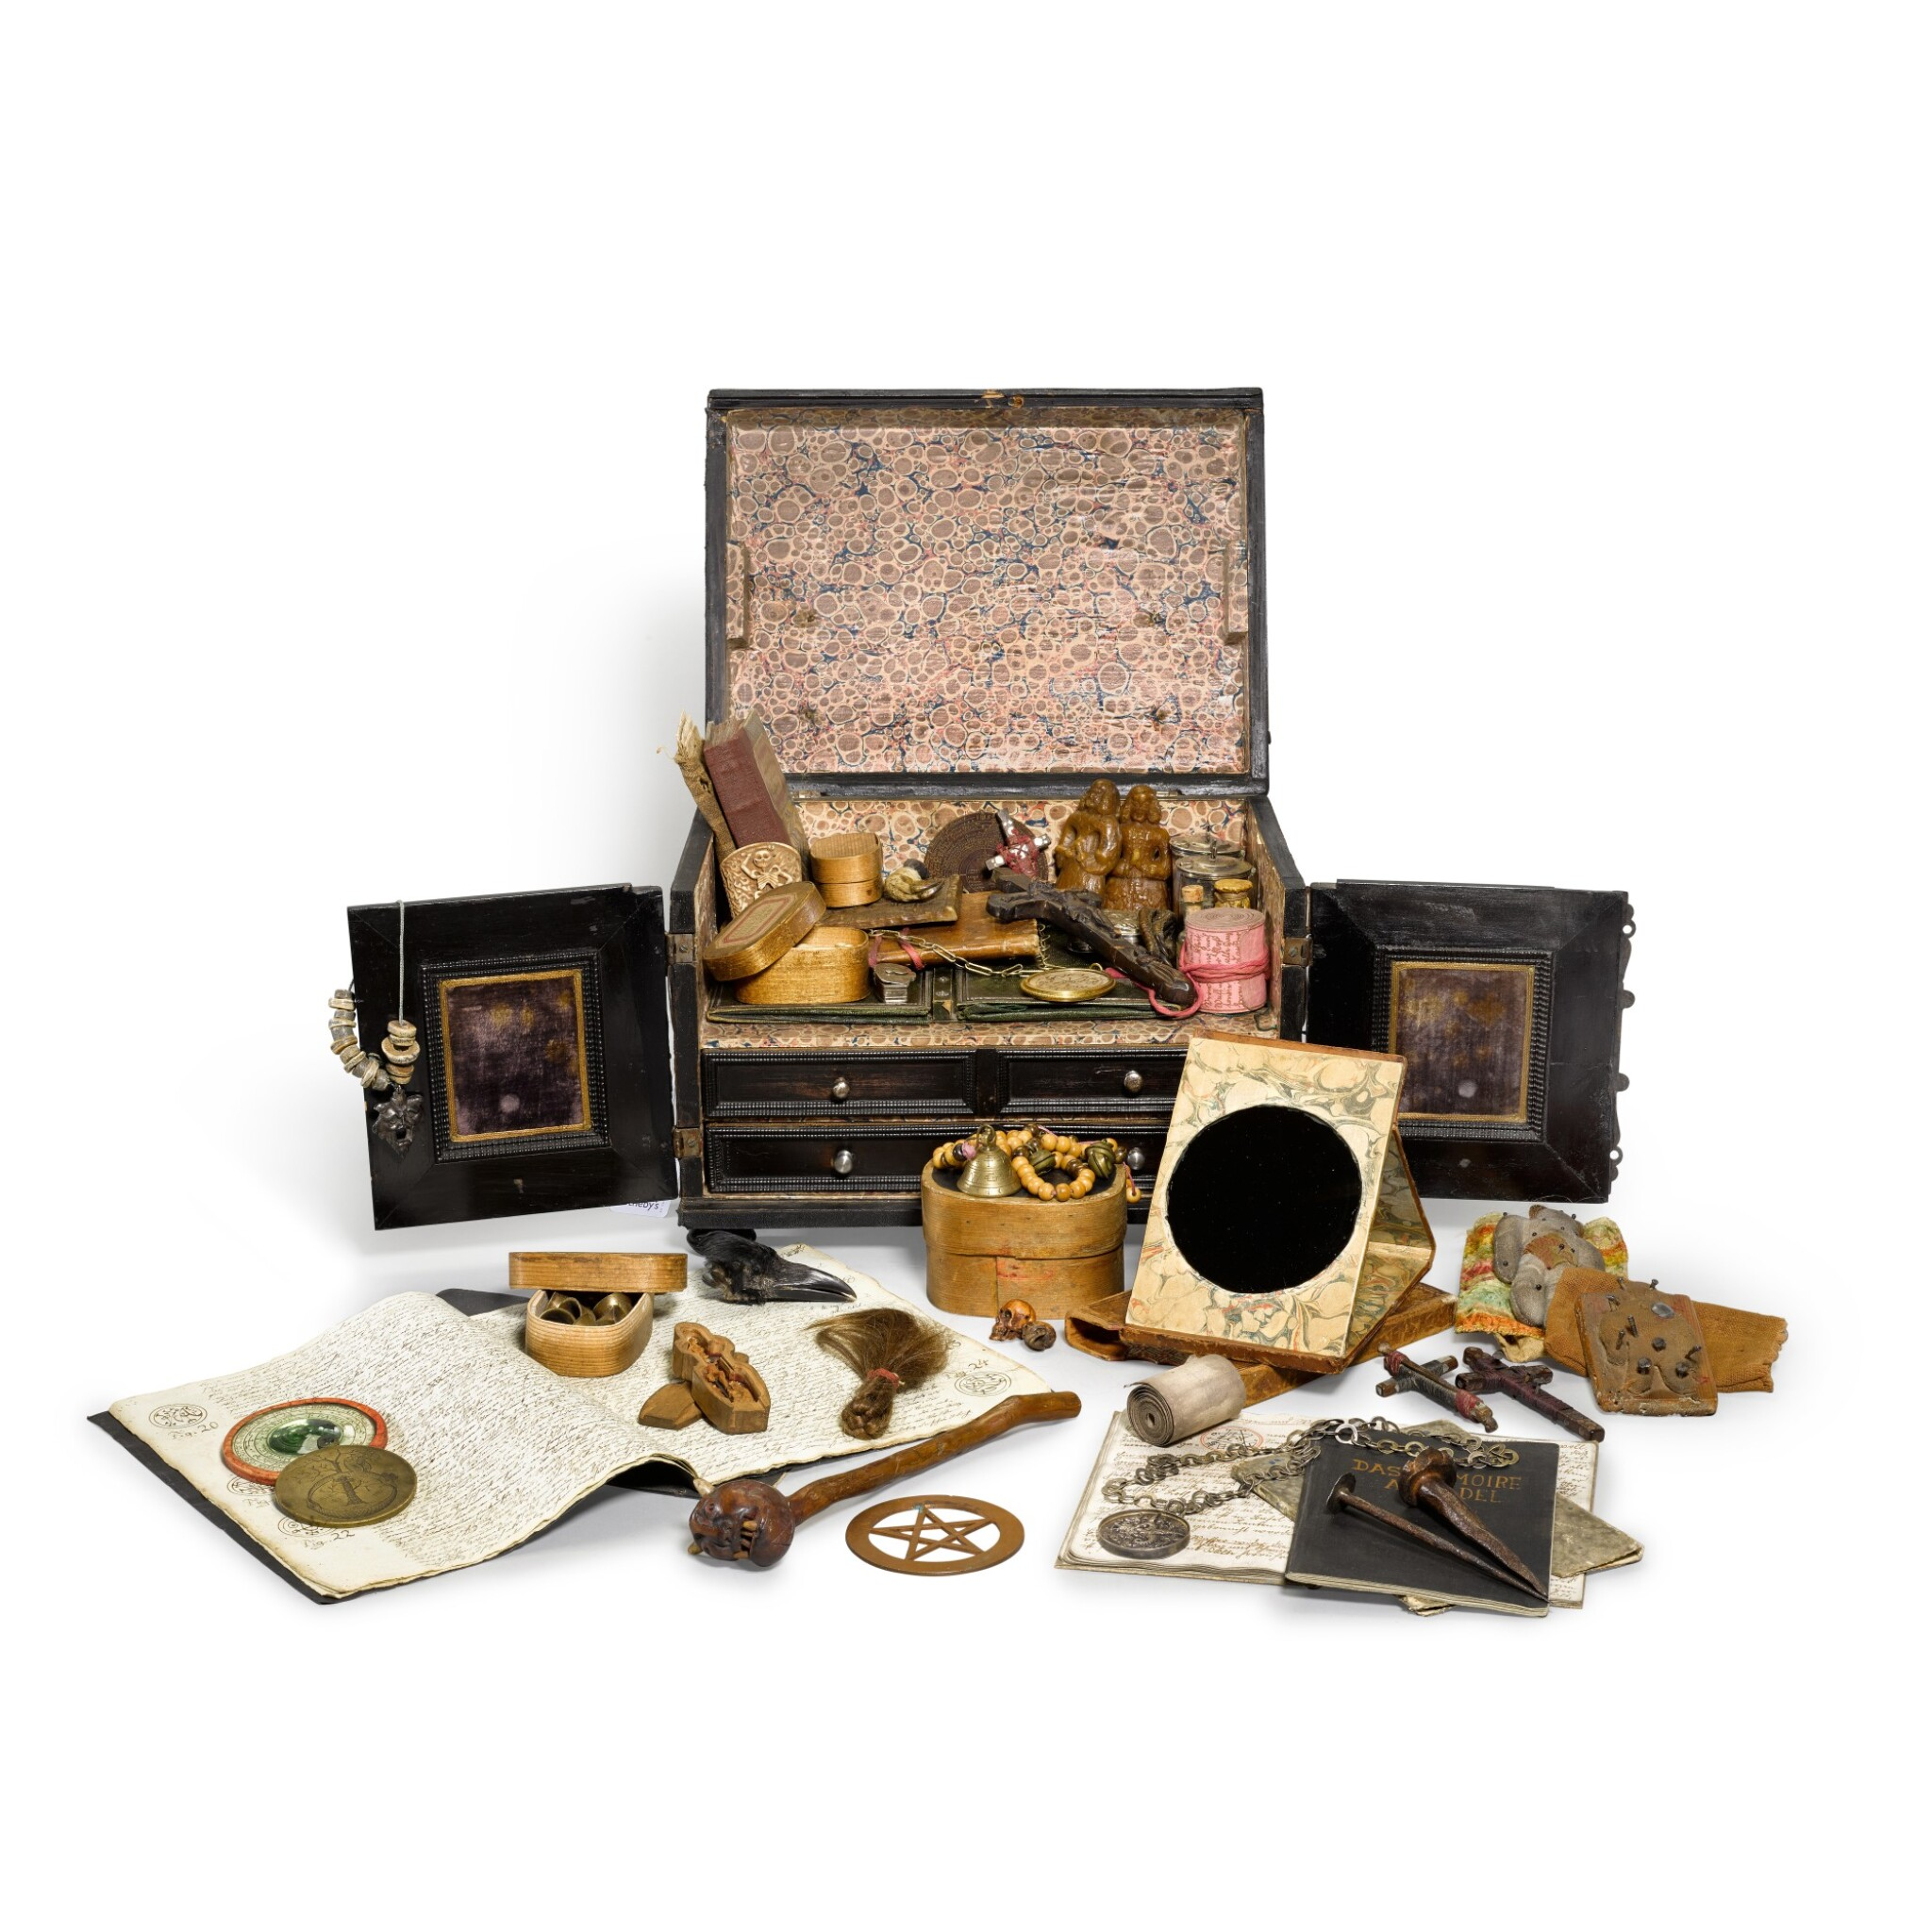 View full screen - View 1 of Lot 170. An extraordinary assemblage of objects pertaining to the occult and witchcraft, 17th to 20th century.